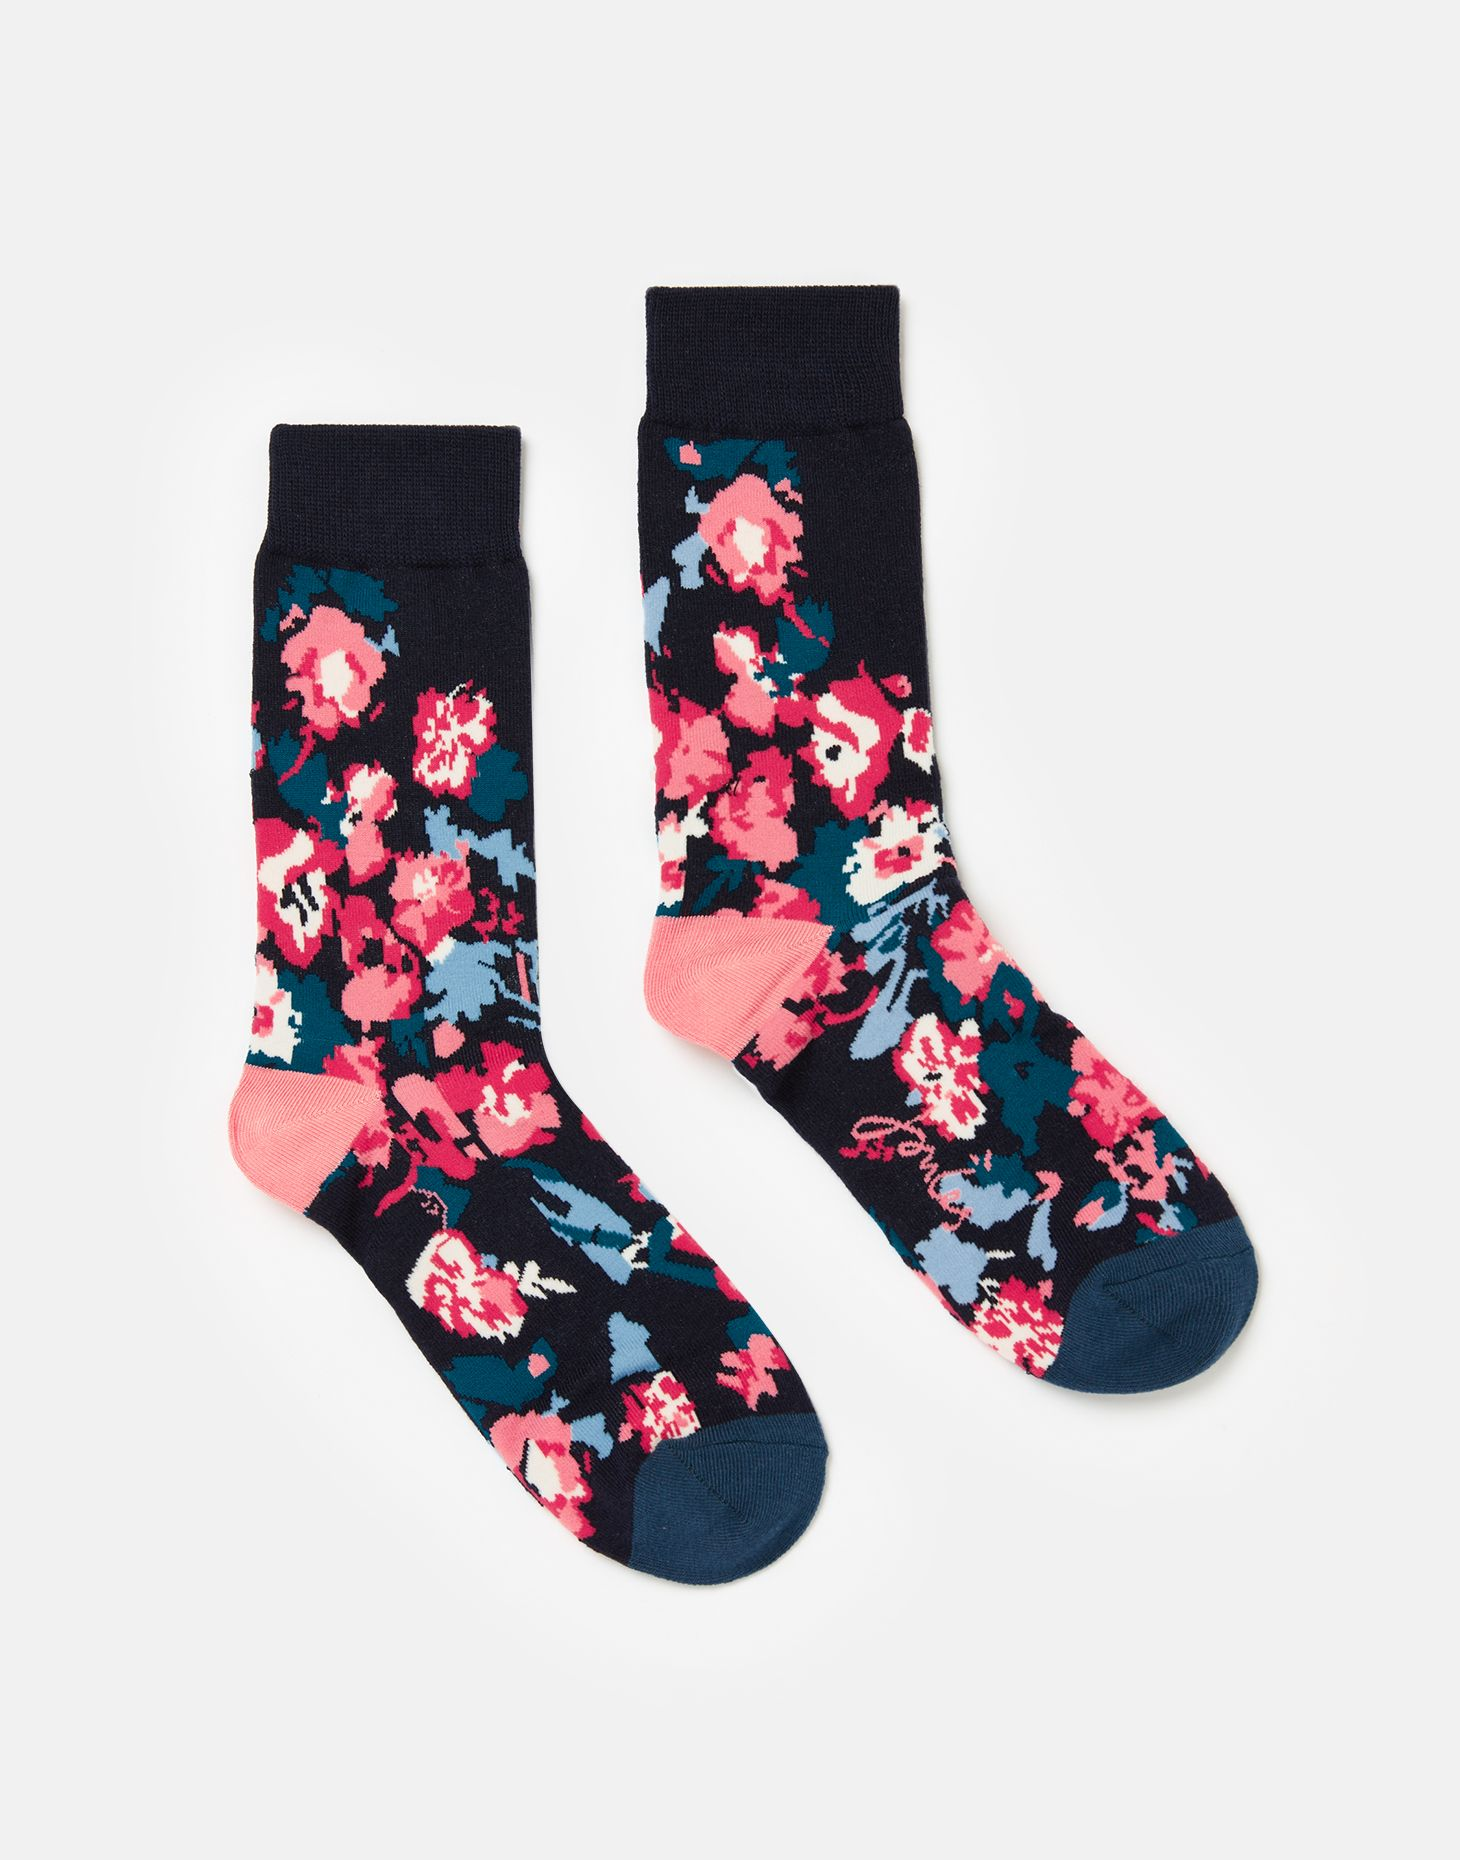 Joules Brill Bamboo Socks Set of 3 Floral